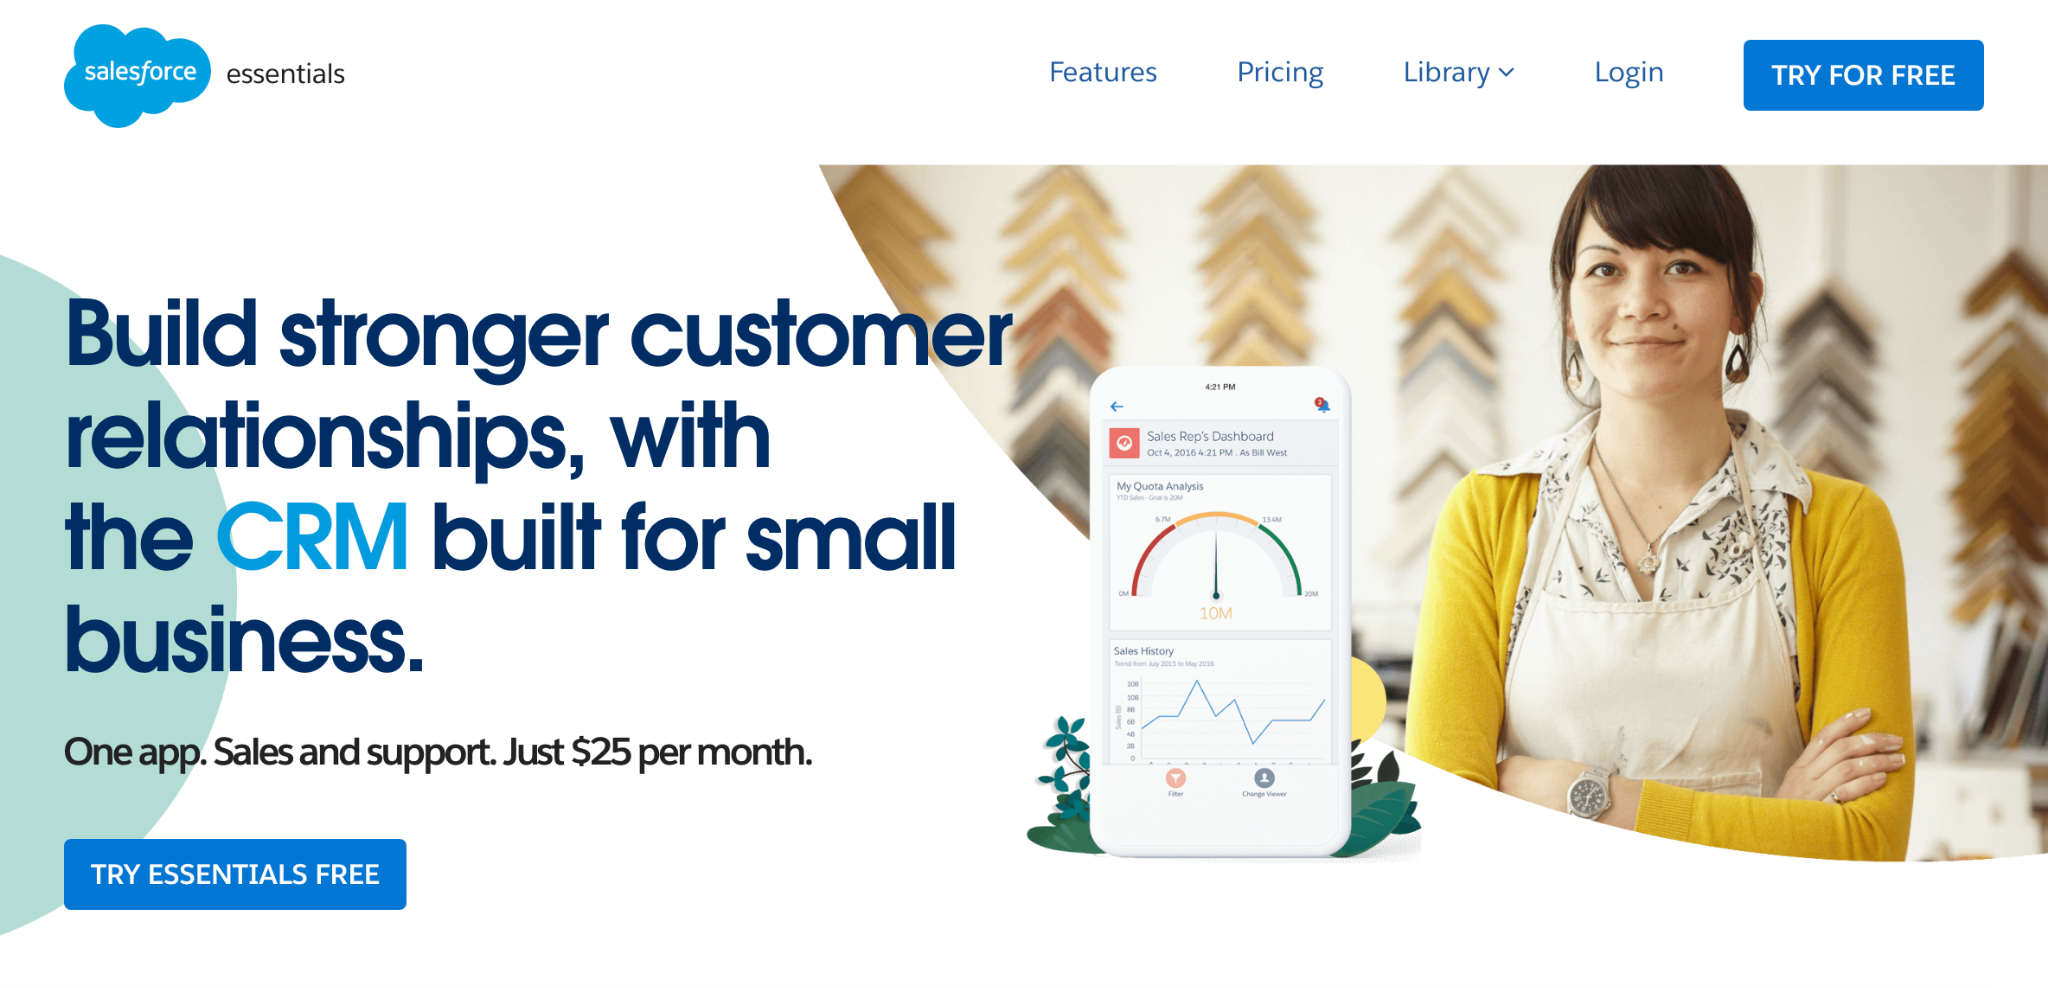 Salesforce Essentials homepage: Build stronger customer relationships, with the CRM built for small business.